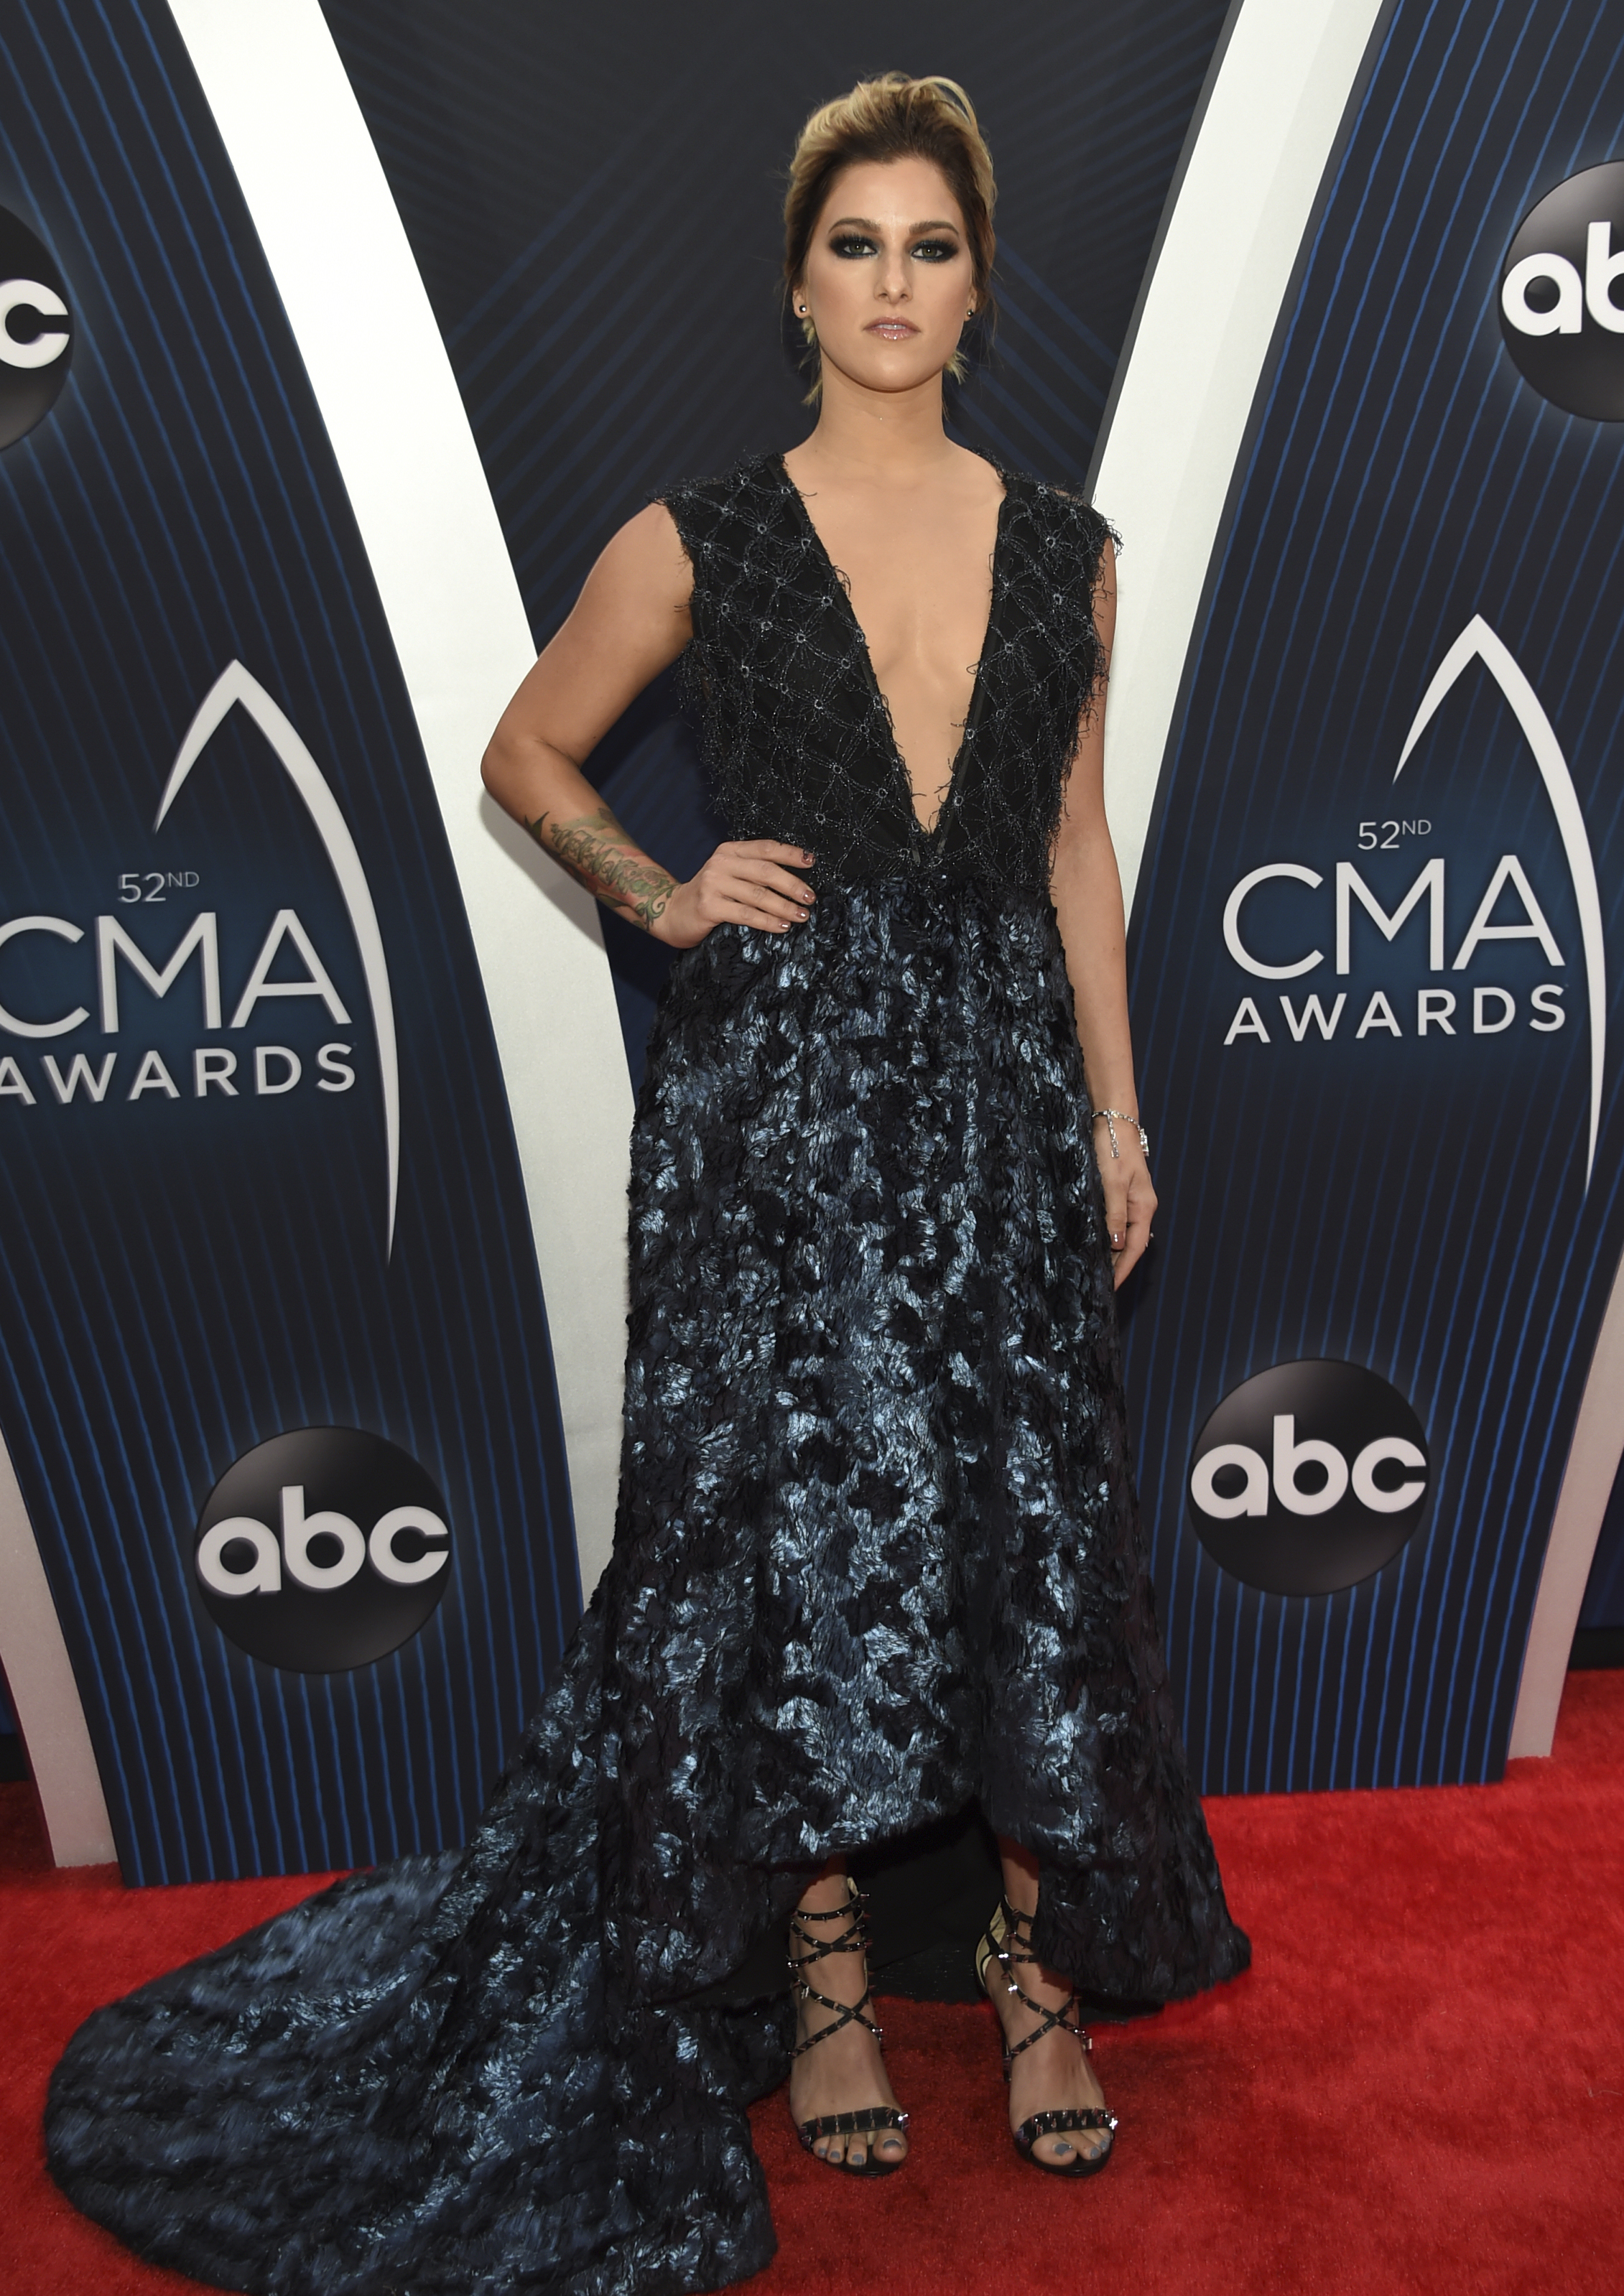 "<div class=""meta image-caption""><div class=""origin-logo origin-image ap""><span>AP</span></div><span class=""caption-text"">Cassadee Pope arrives at the 52nd annual CMA Awards at Bridgestone Arena on Wednesday, Nov. 14, 2018, in Nashville, Tenn. (Photo by Evan Agostini/Invision/AP) (Evan Agostini/Invision/AP)</span></div>"